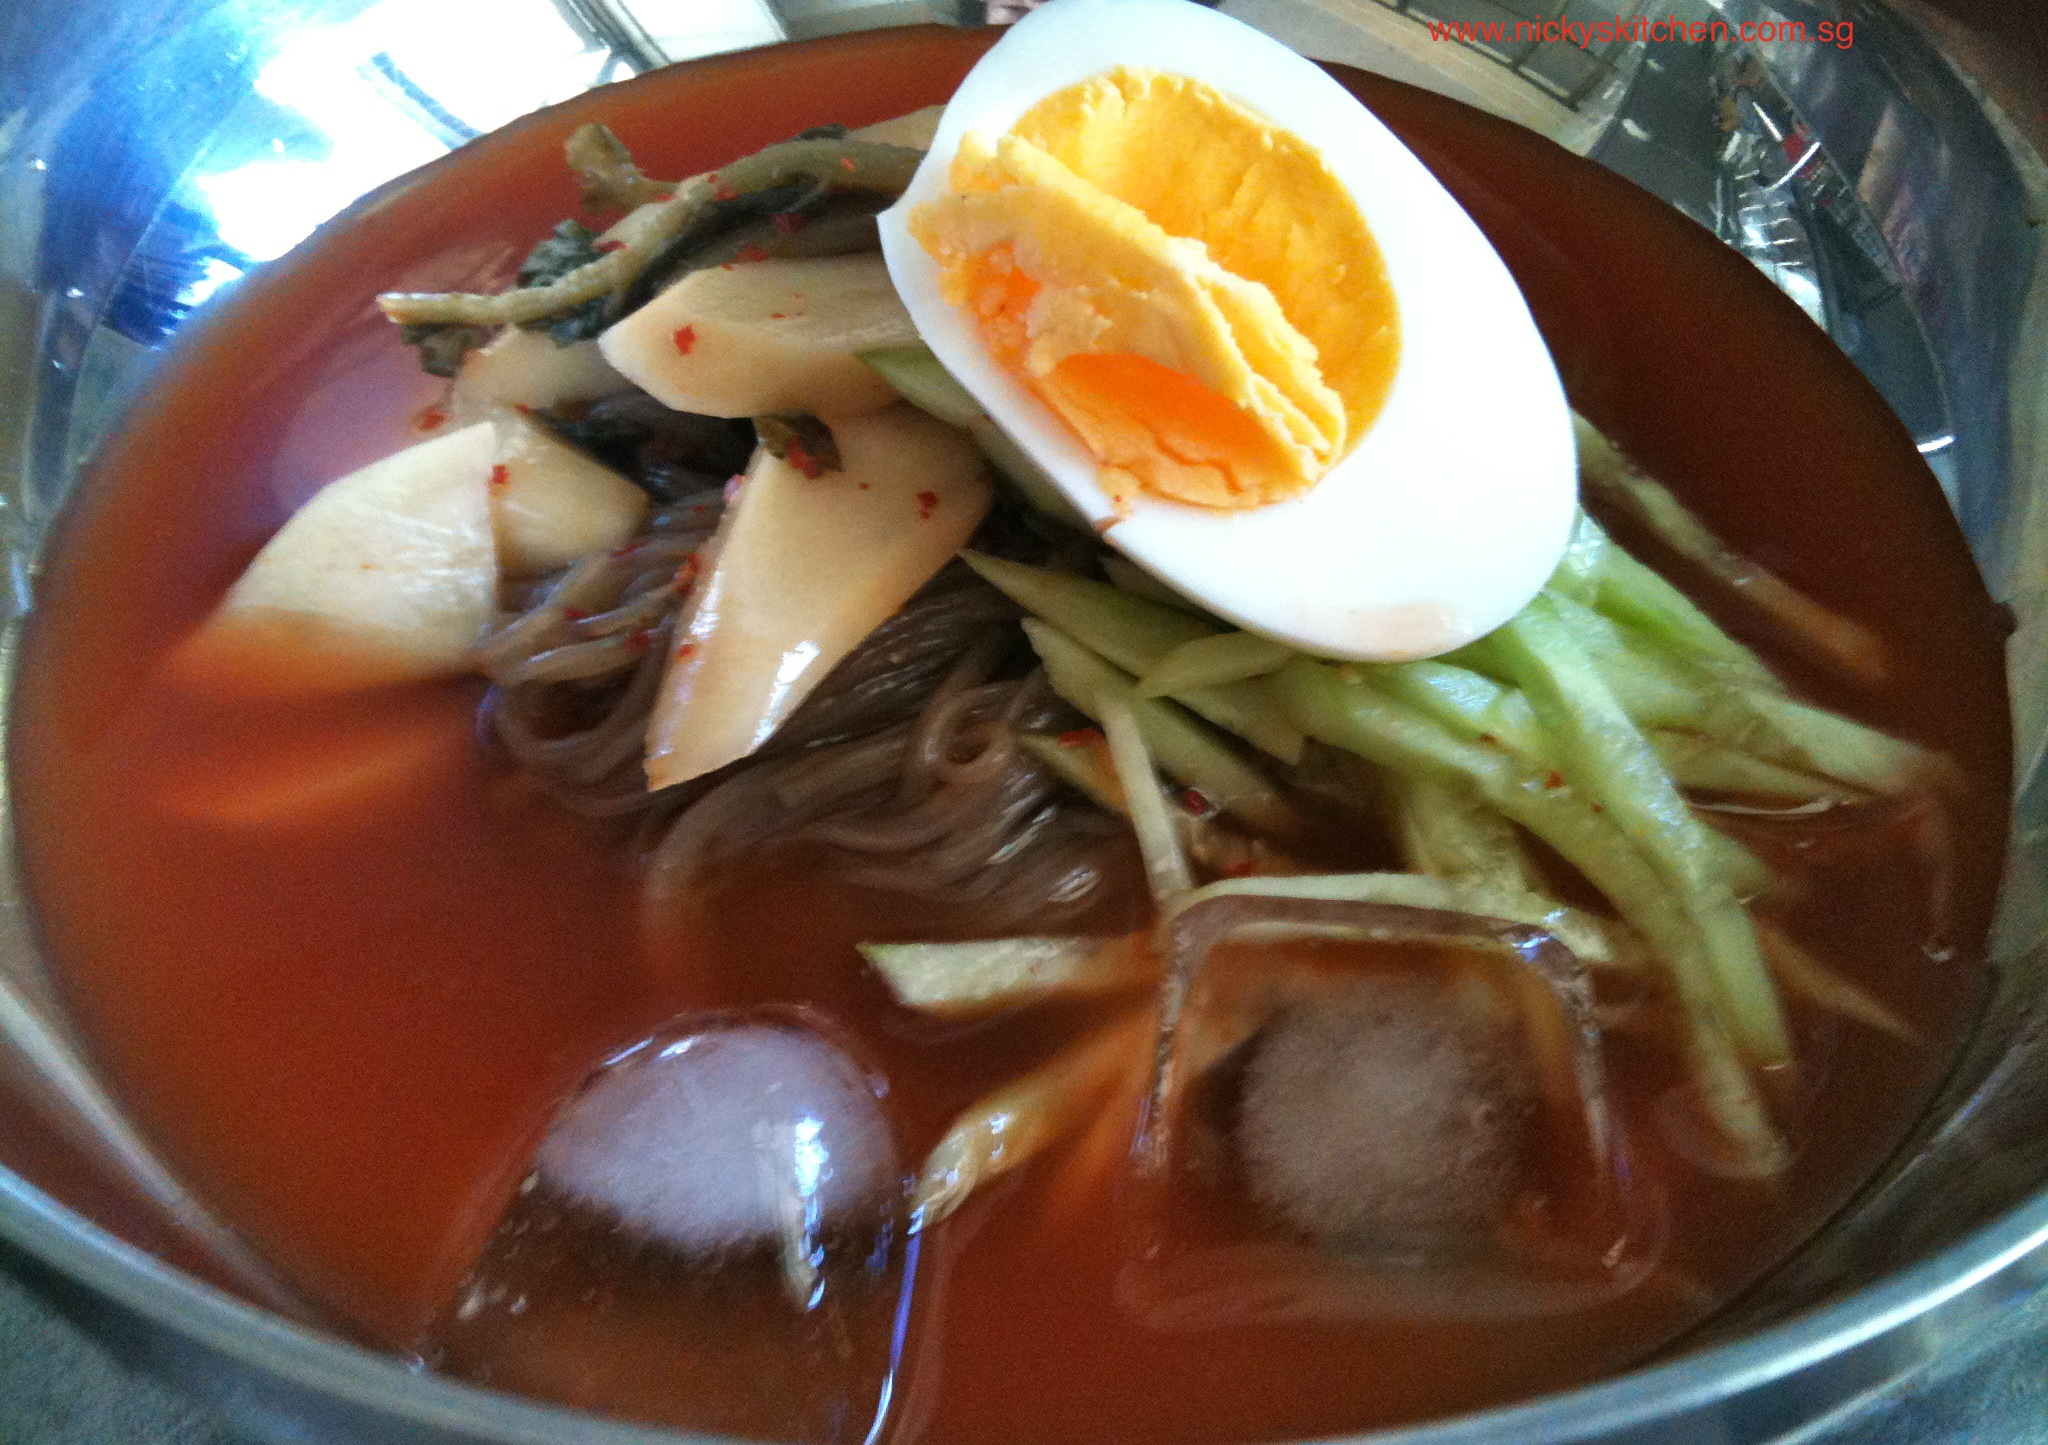 Spicy cold noodle(neng myun) with young radish kimchi!